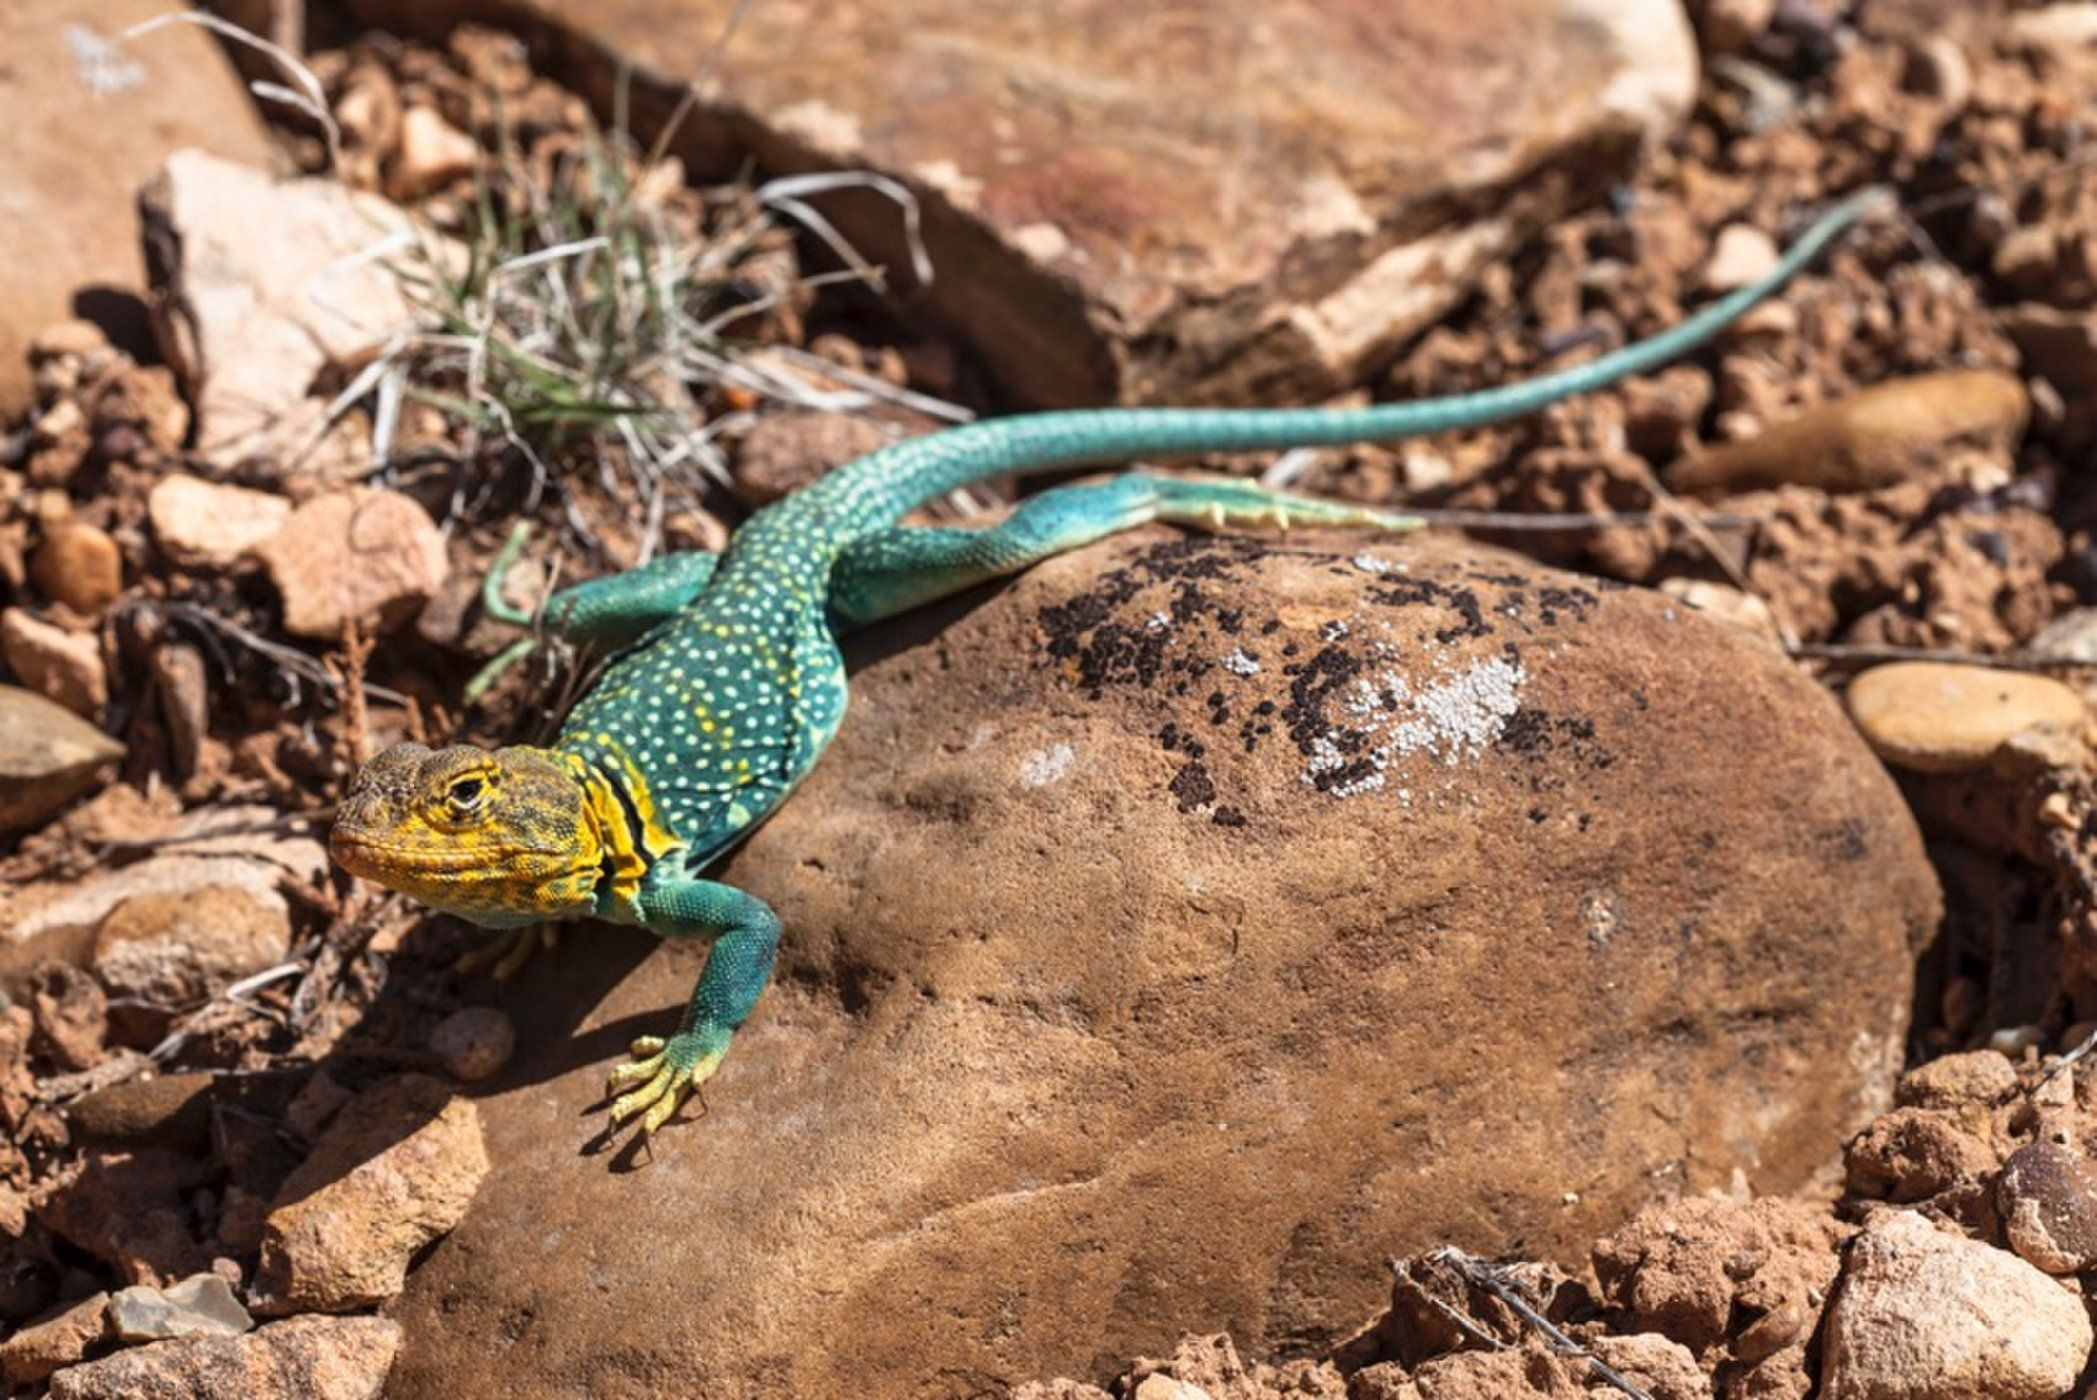 In Photos Flashy Collared Lizards of the North American